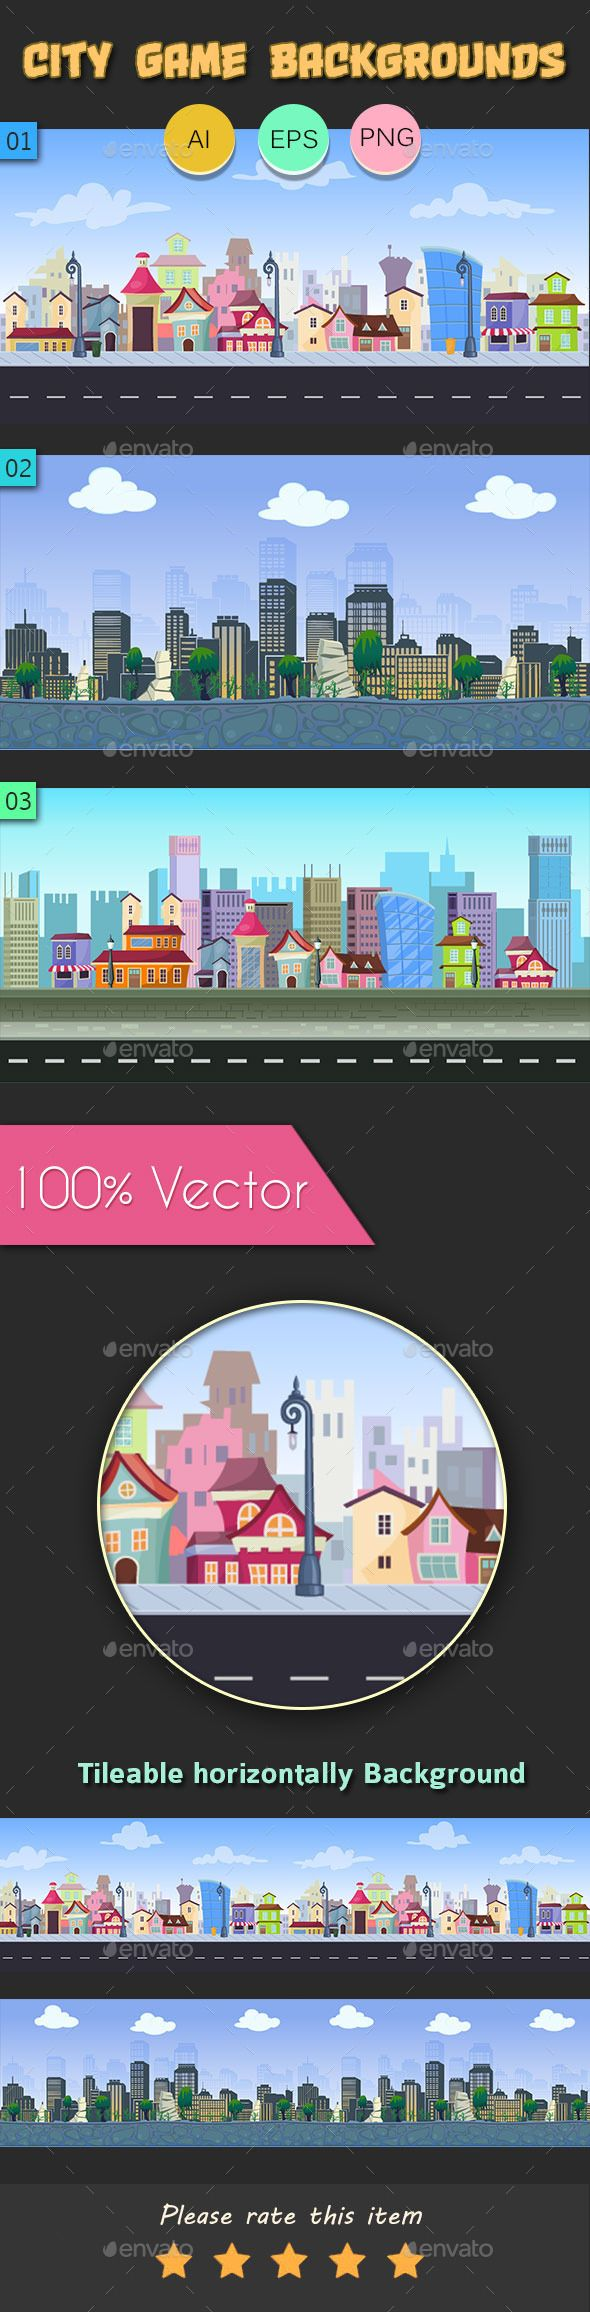 City Game Background Download here: https://graphicriver.net/item/-city-game-background-/11194223?ref=KlitVogli